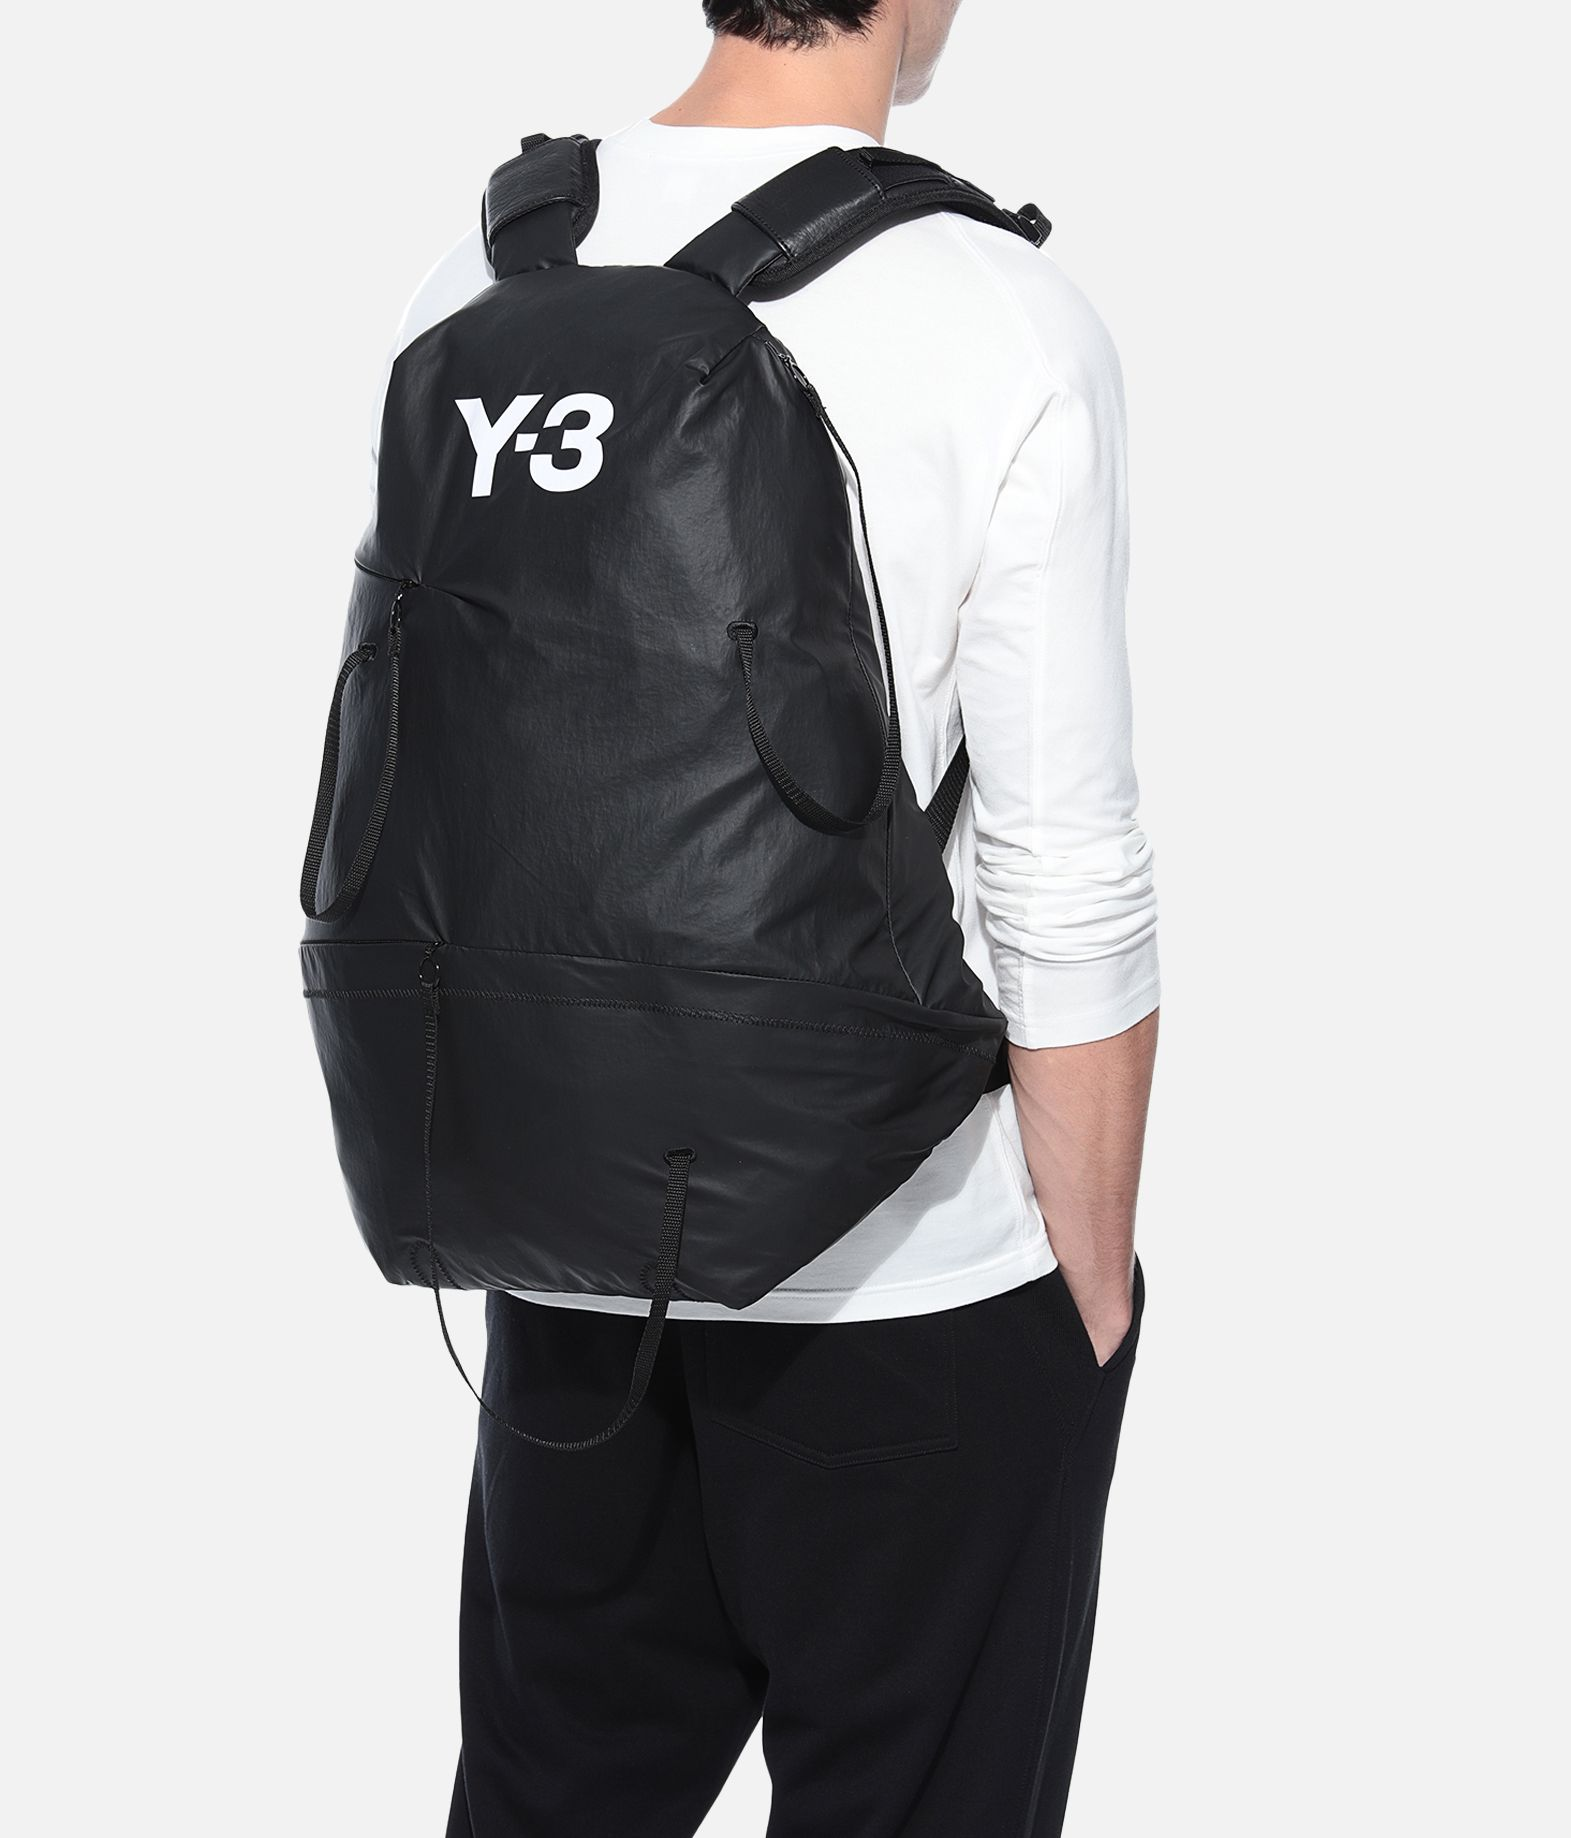 Y-3 Y-3 Bungee Backpack Backpack E a